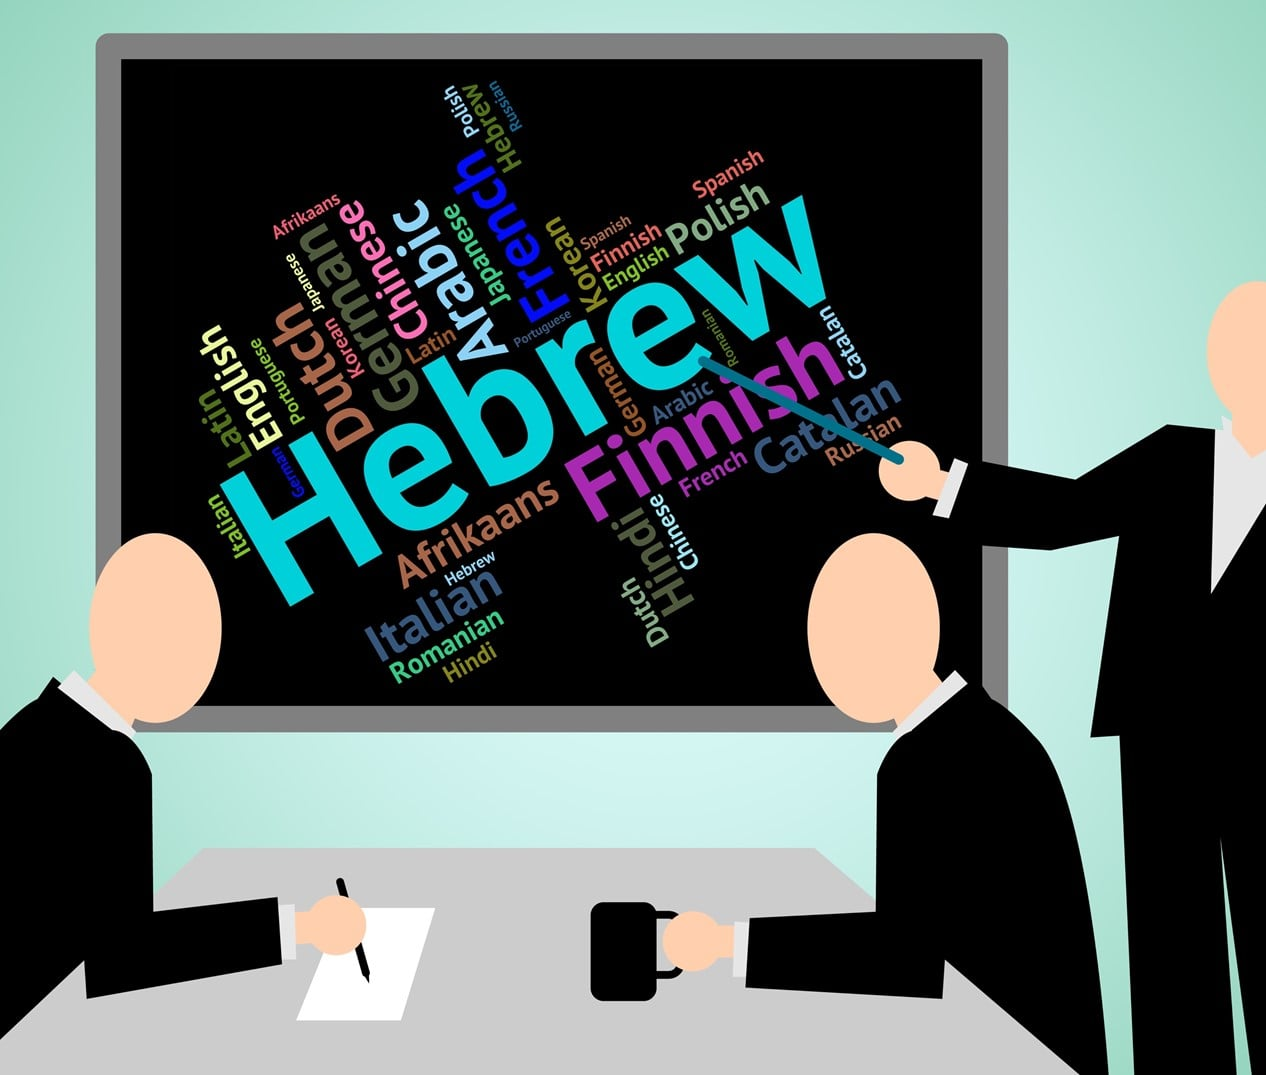 Man pointing to Hebrew on a blackboard